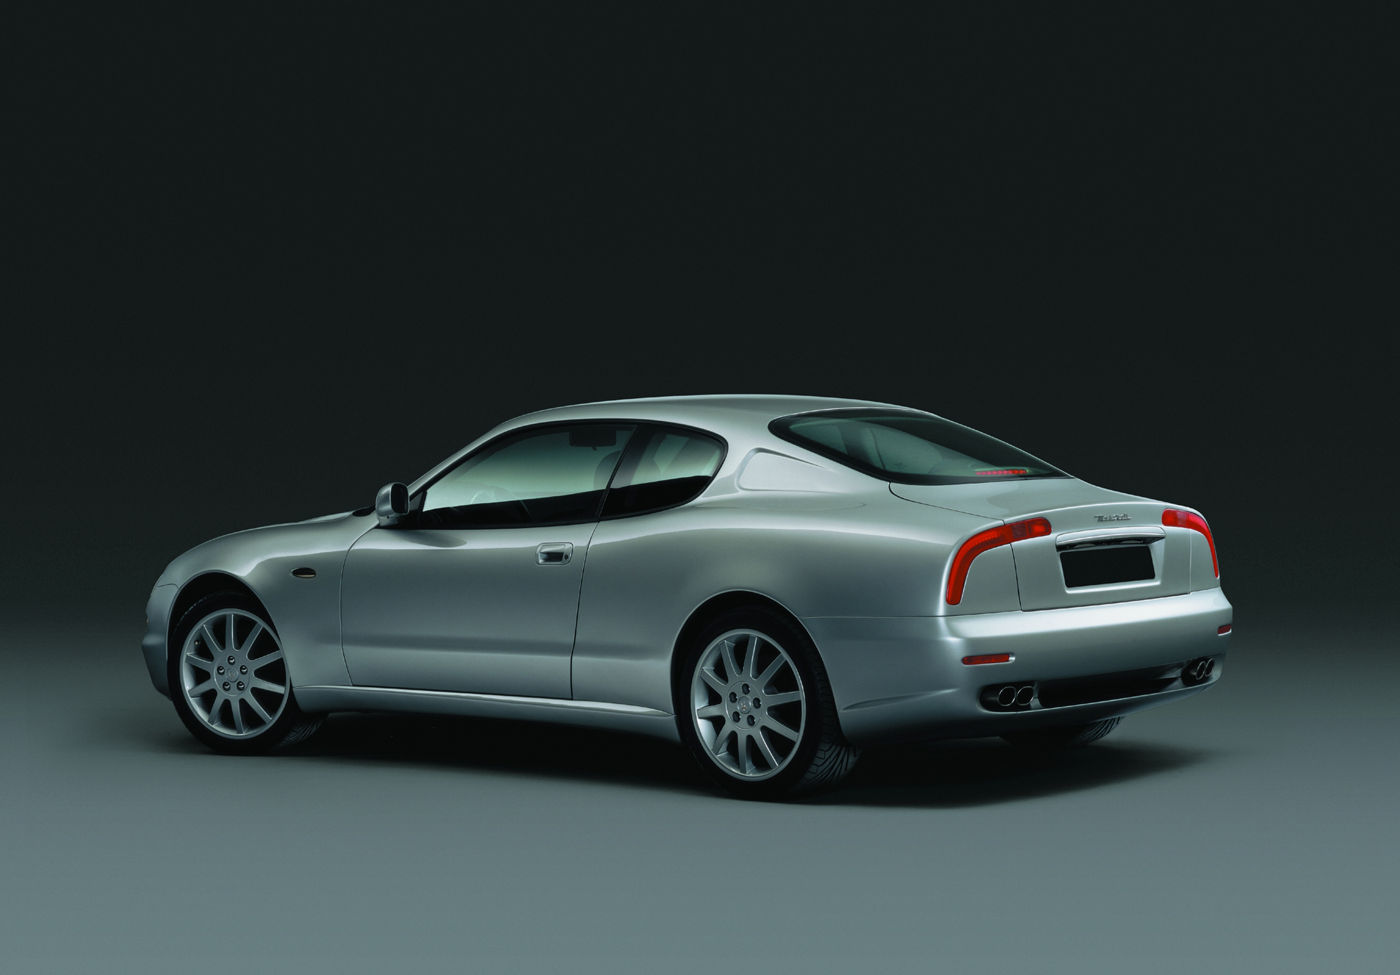 1998 Maserati 3200GT - gray, rear view